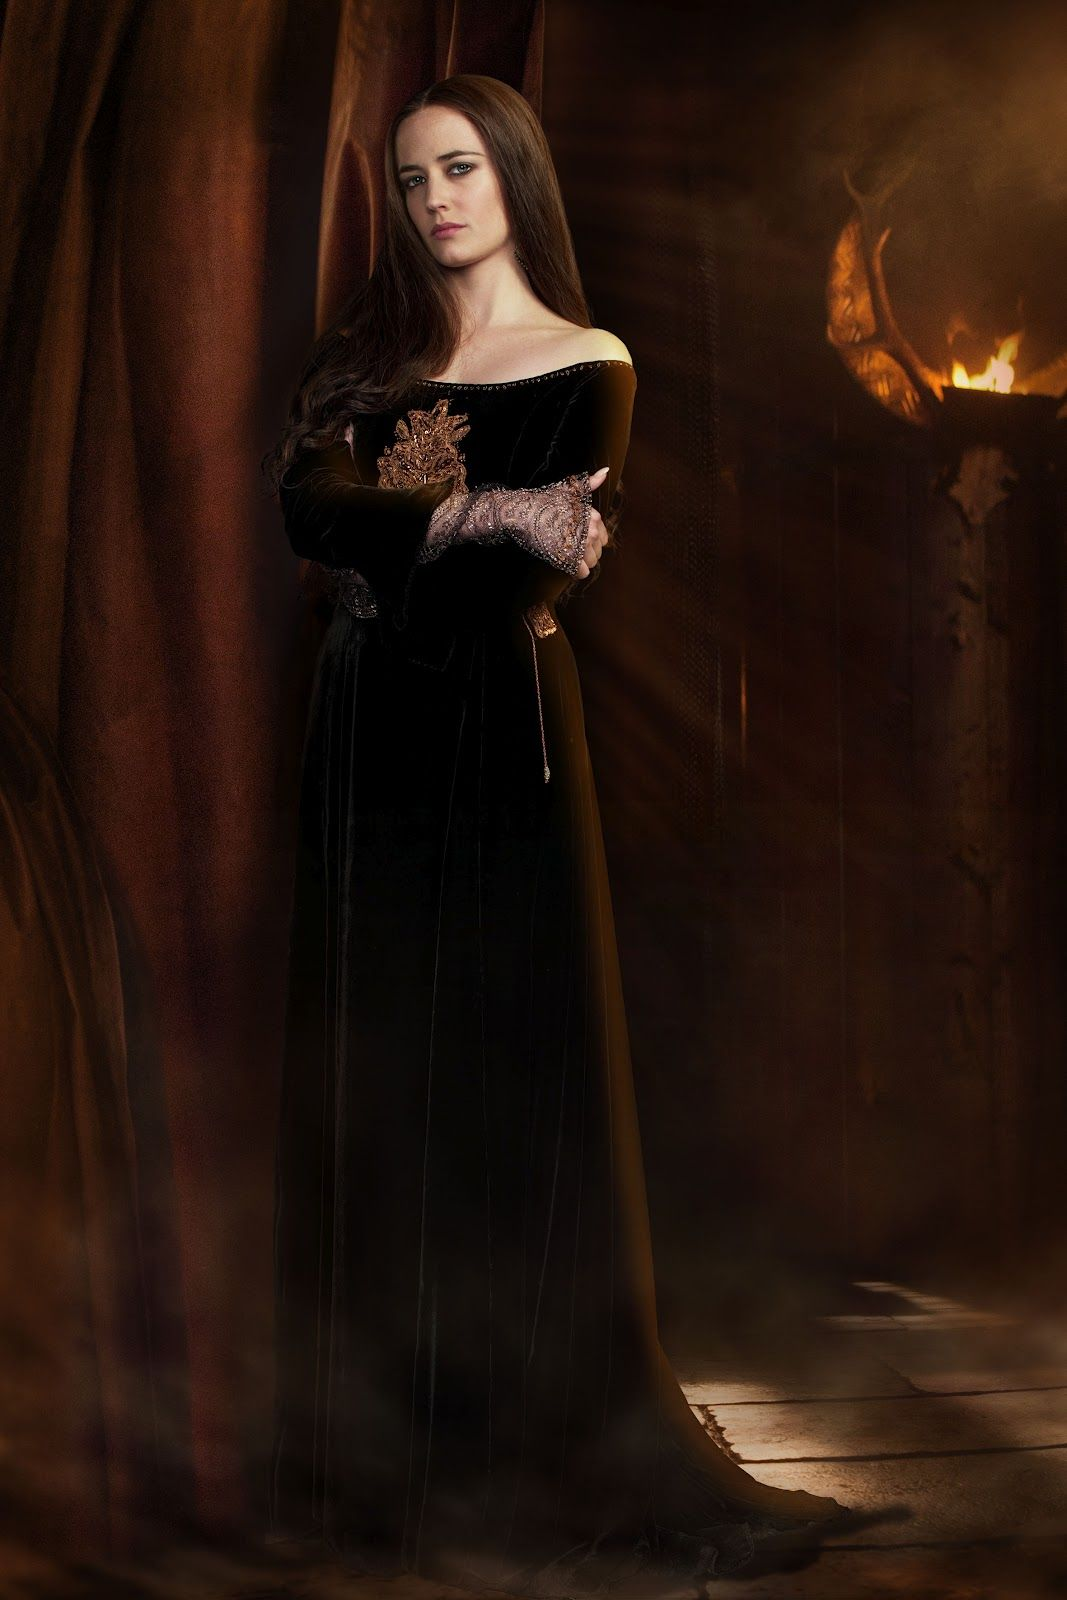 Eva Green As Morgan Le Fay In Camelot 31 At Time Of